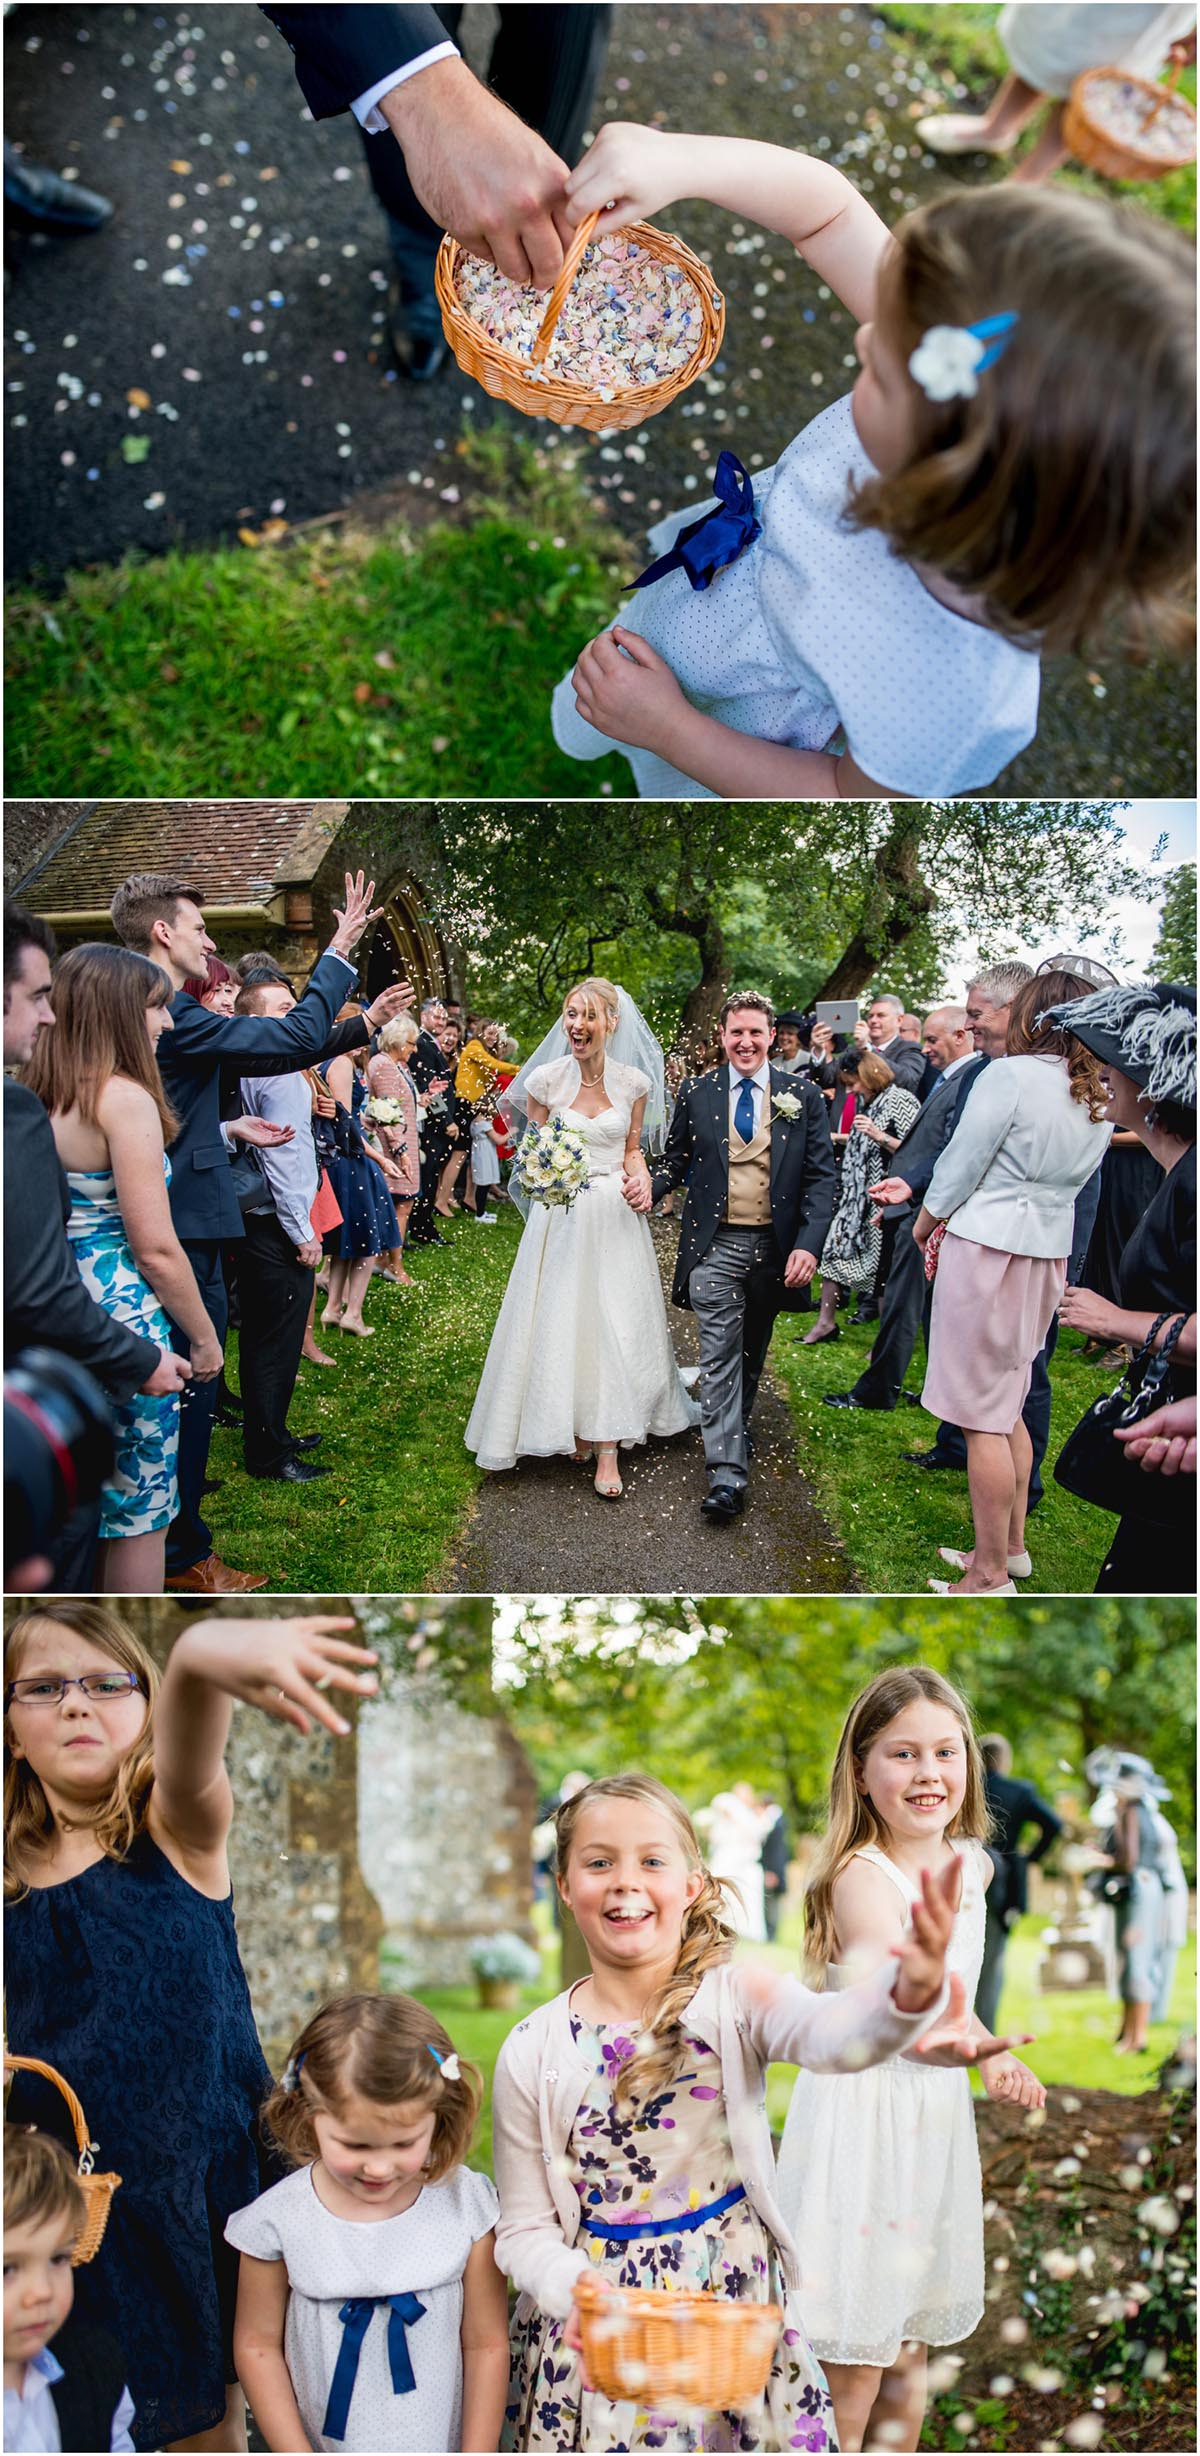 Susie and Ed's Dorset Wedding in Alton Pancras, Dorset, near Cerne Abbas, By Lisa Carpenter Photography, West Midlands, Birmingham based photographer, onfetti